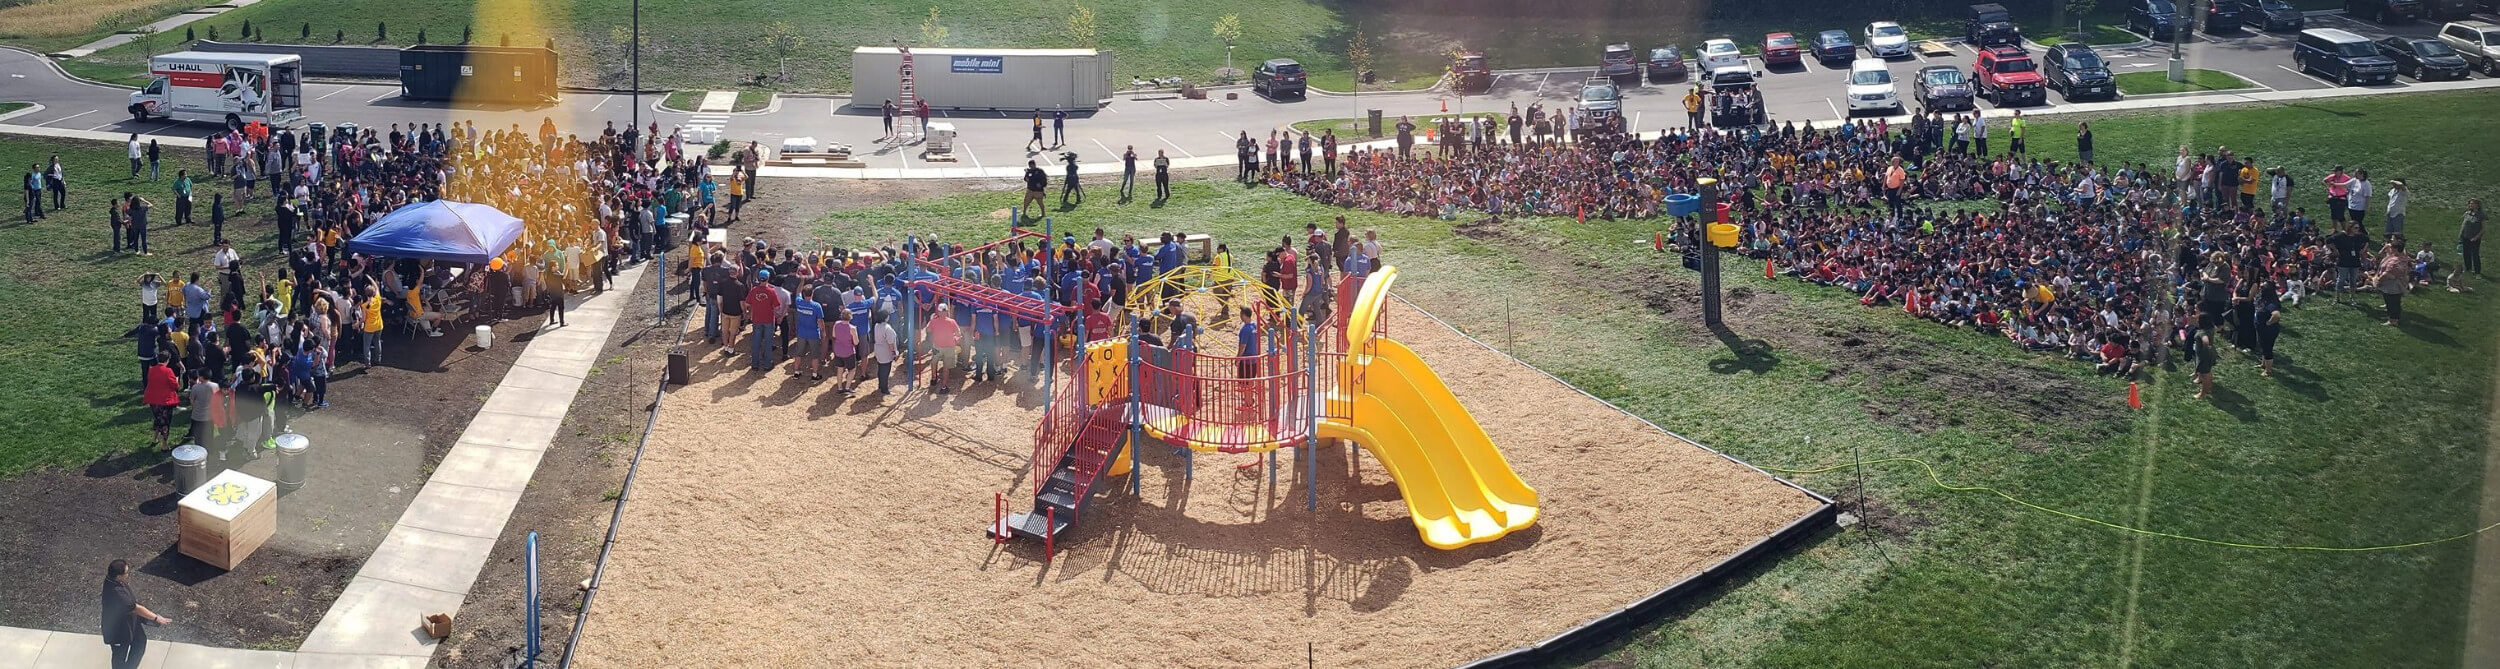 CSE playground dedication.jpg